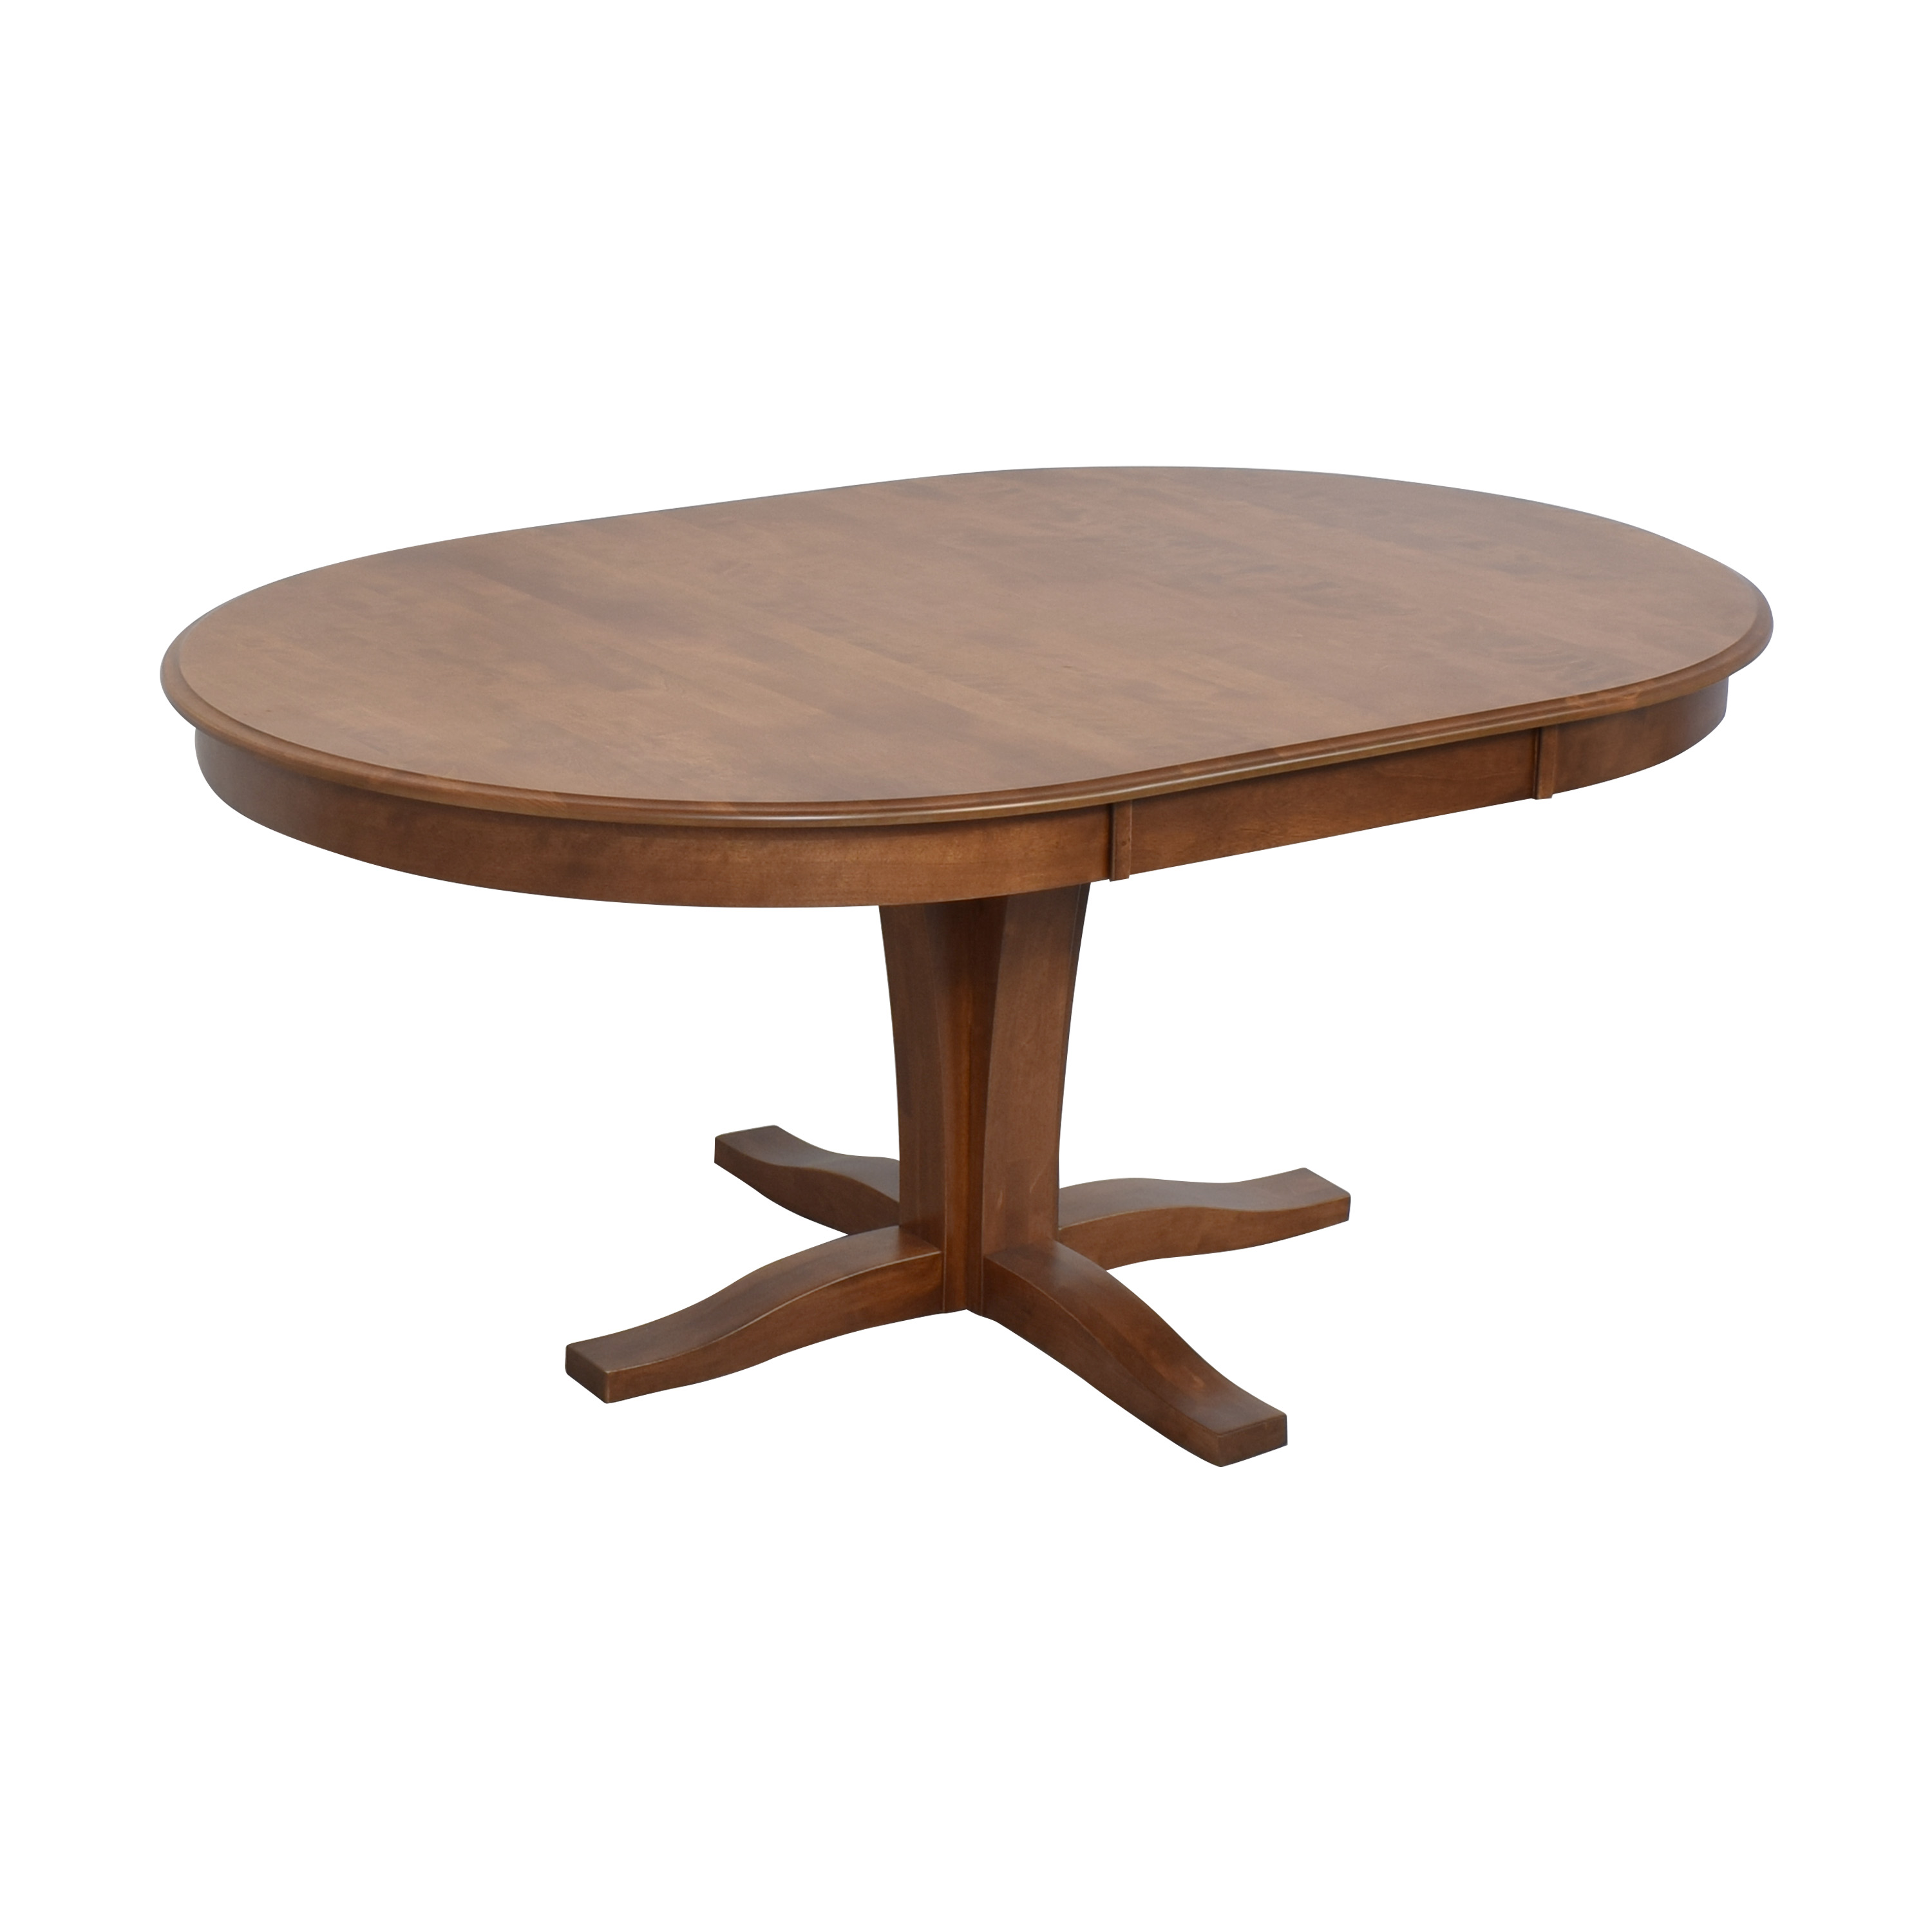 Canadel Canadel Pedestal Dining Table discount